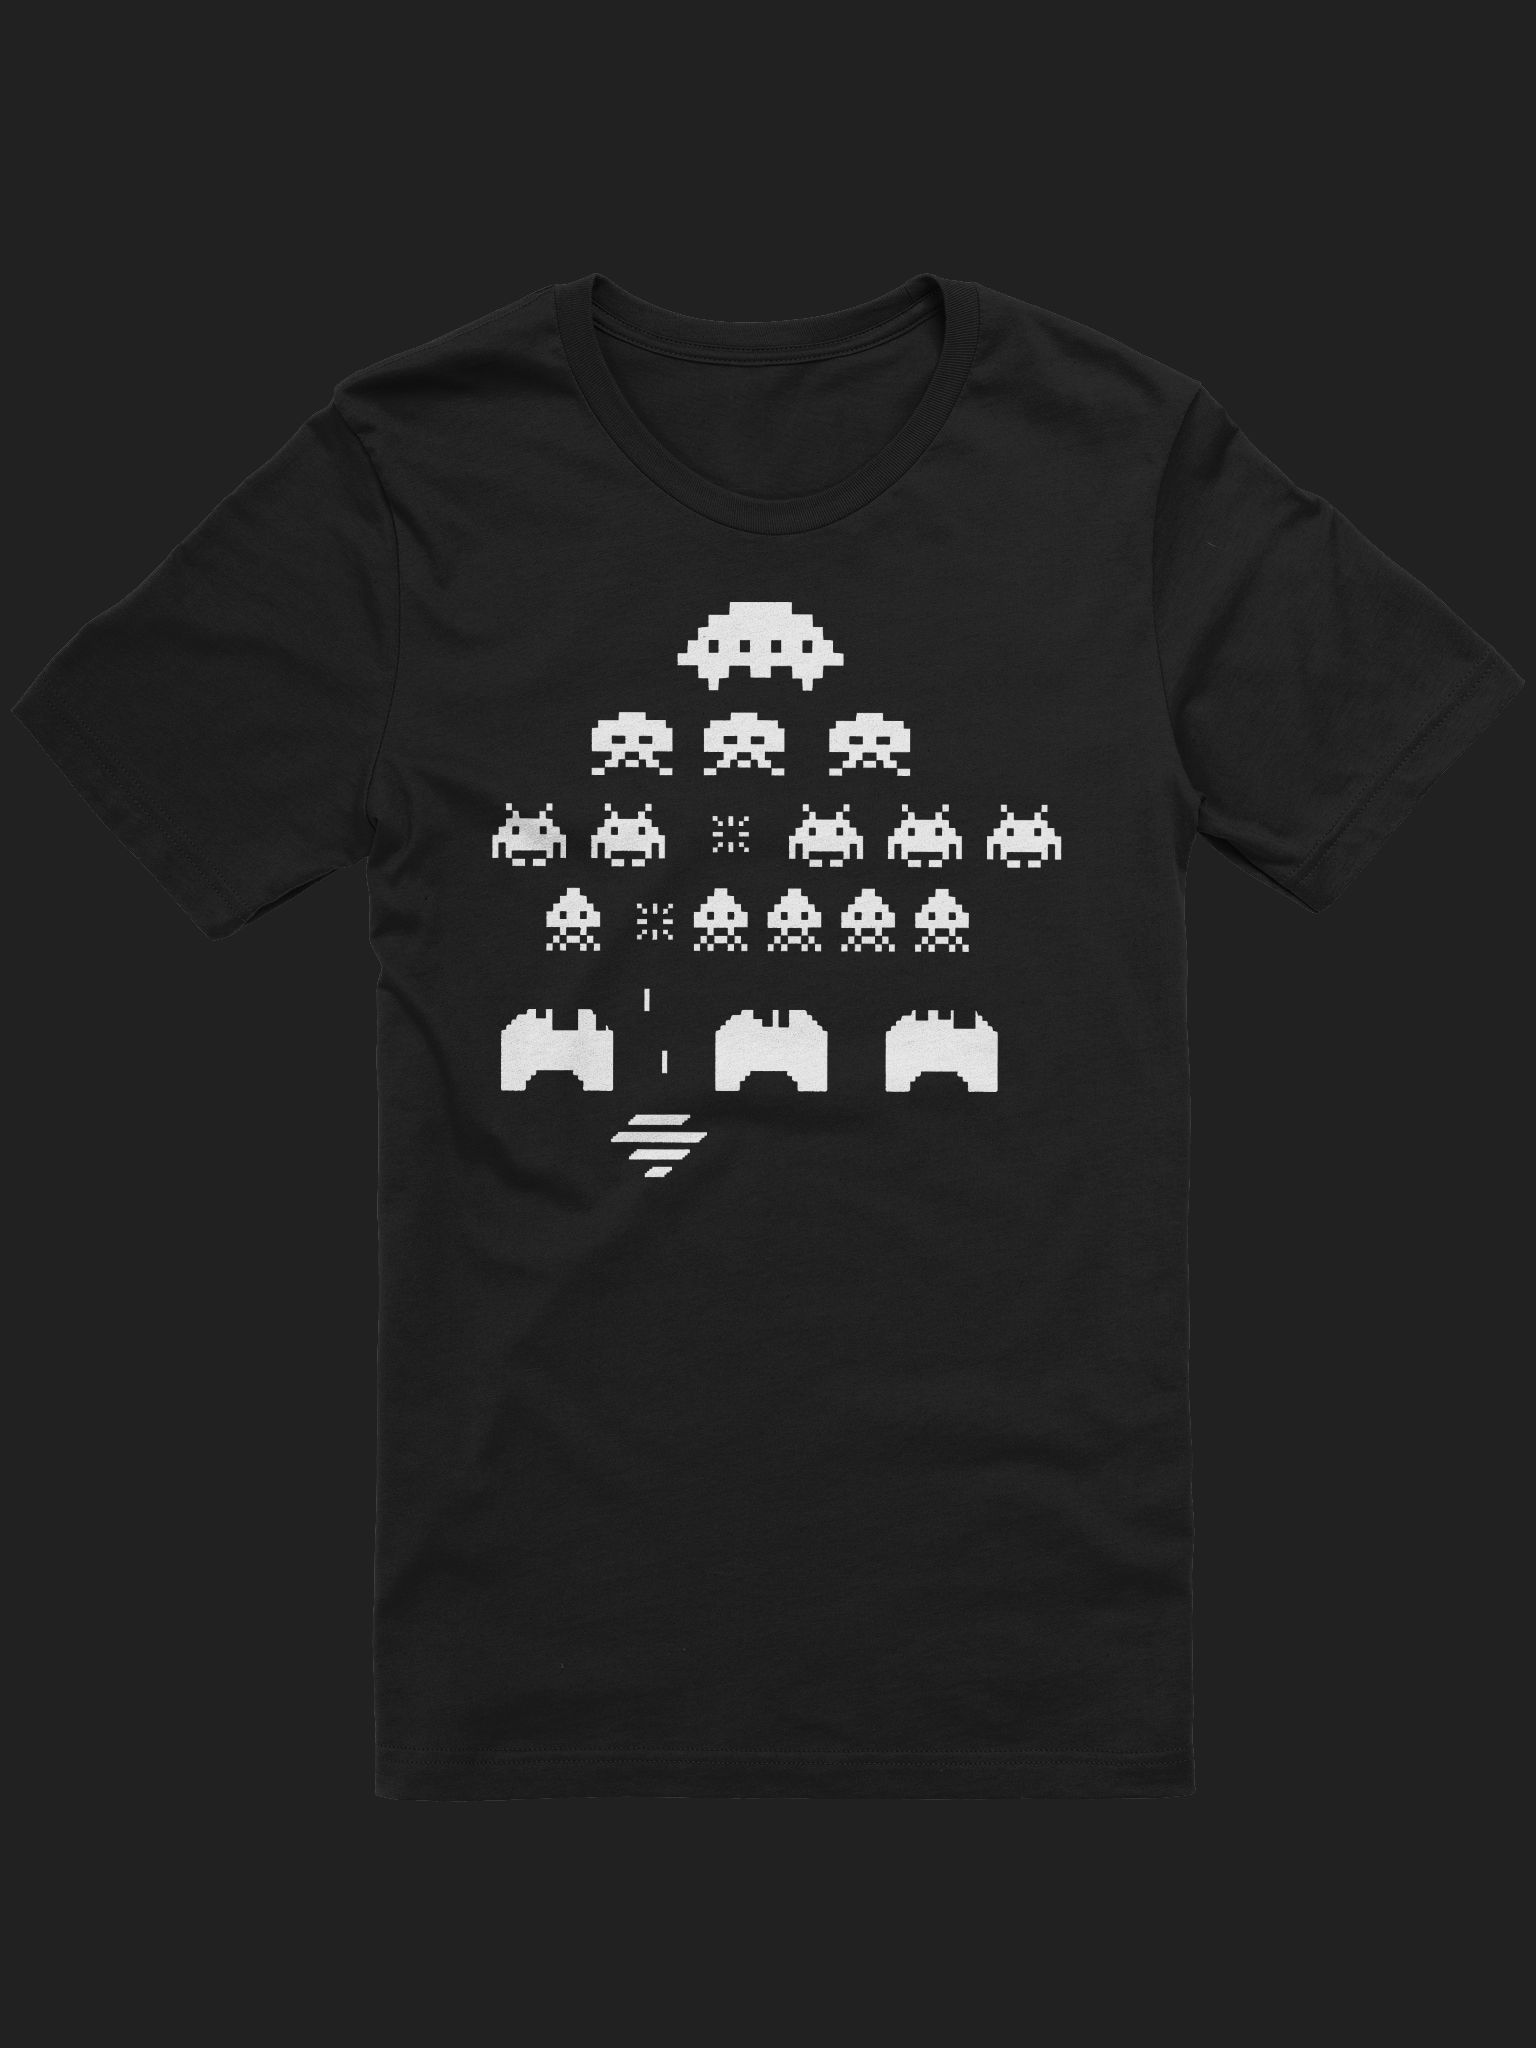 Space Invaders Limited Collection Shirt product image (1)